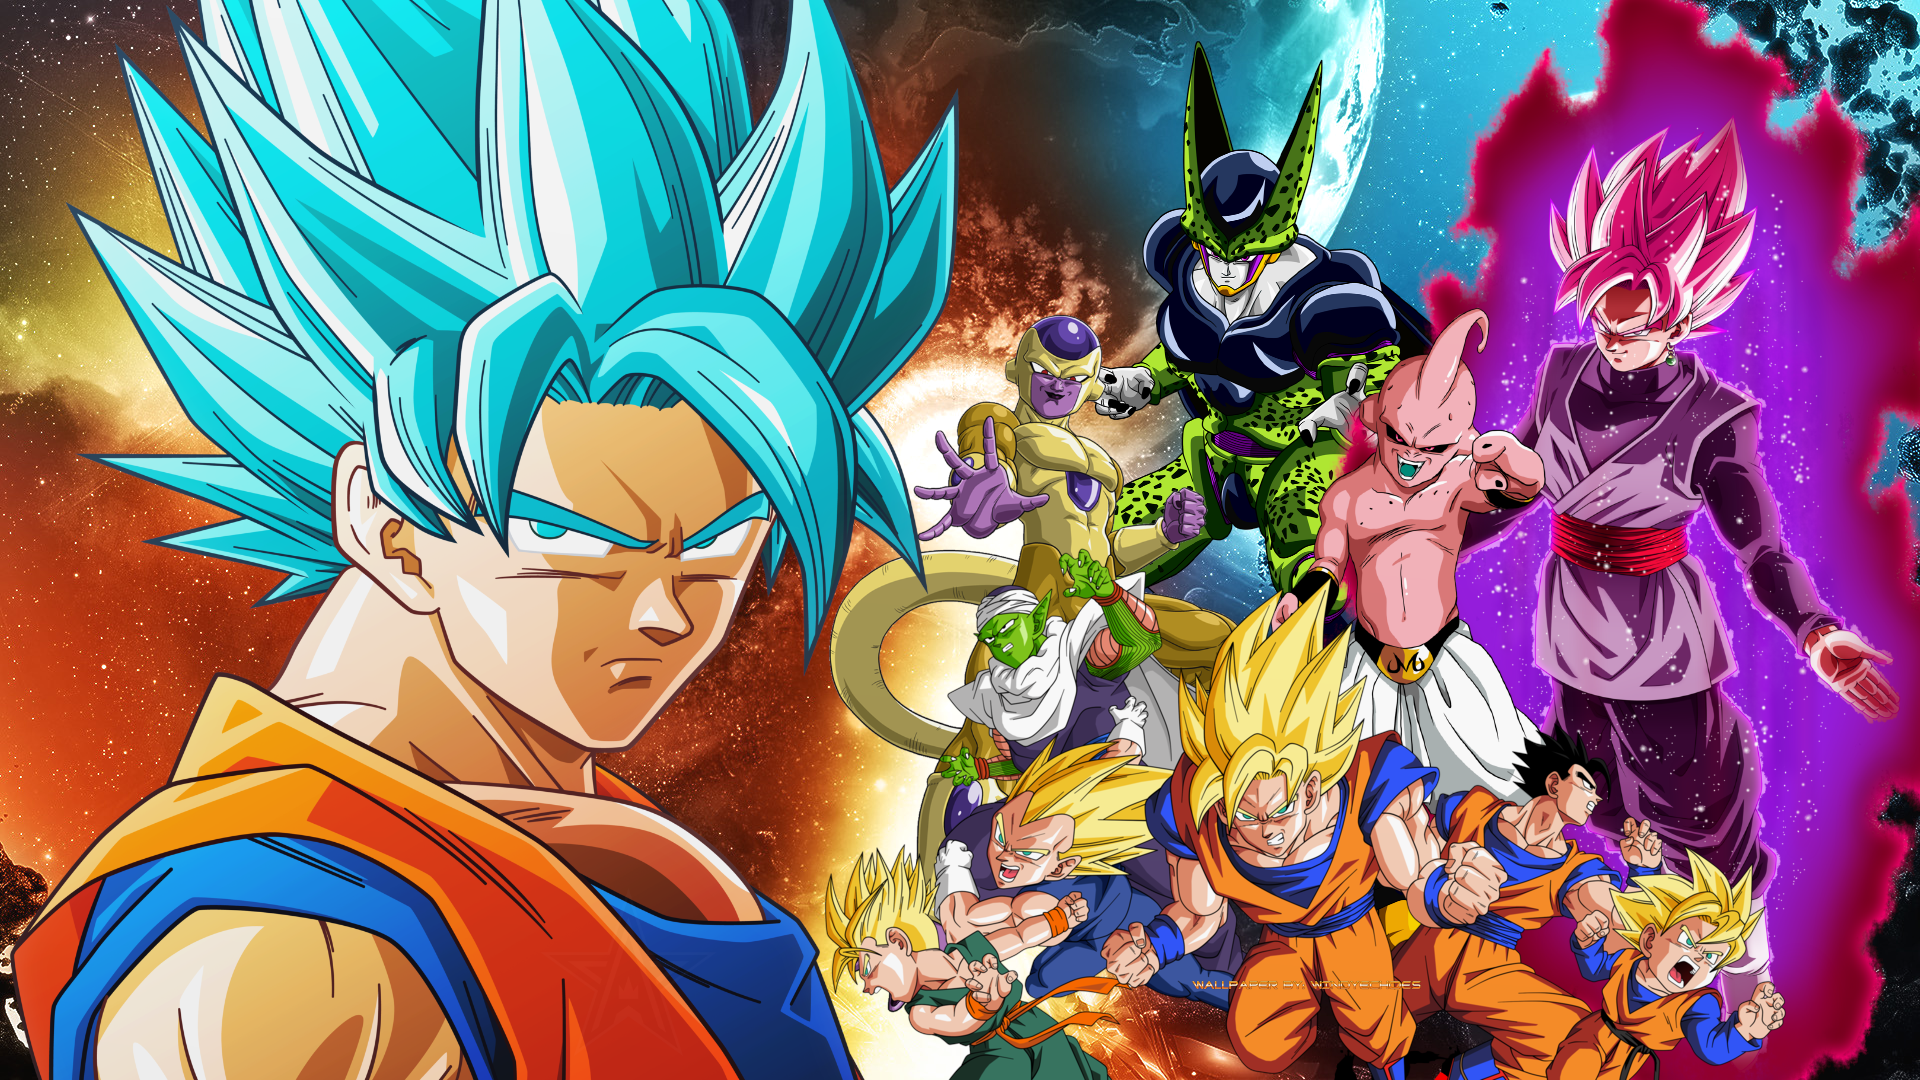 Dragon Ball Z And Dragon Ball Super Wallpaper By Windyechoes On Deviantart